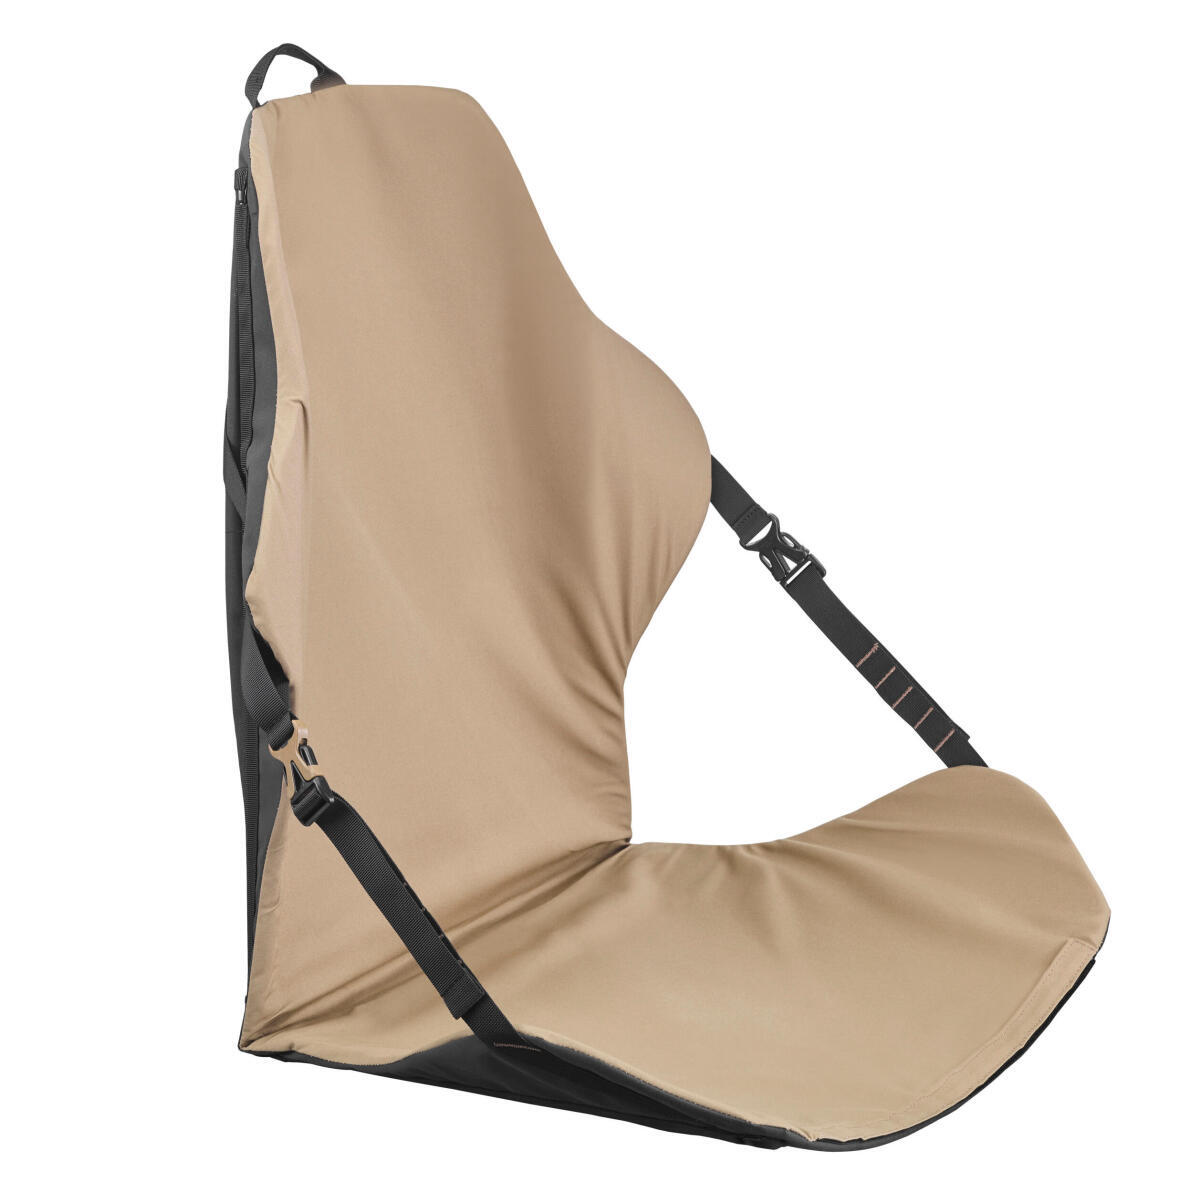 chaise_enroulable_camping-bivouac